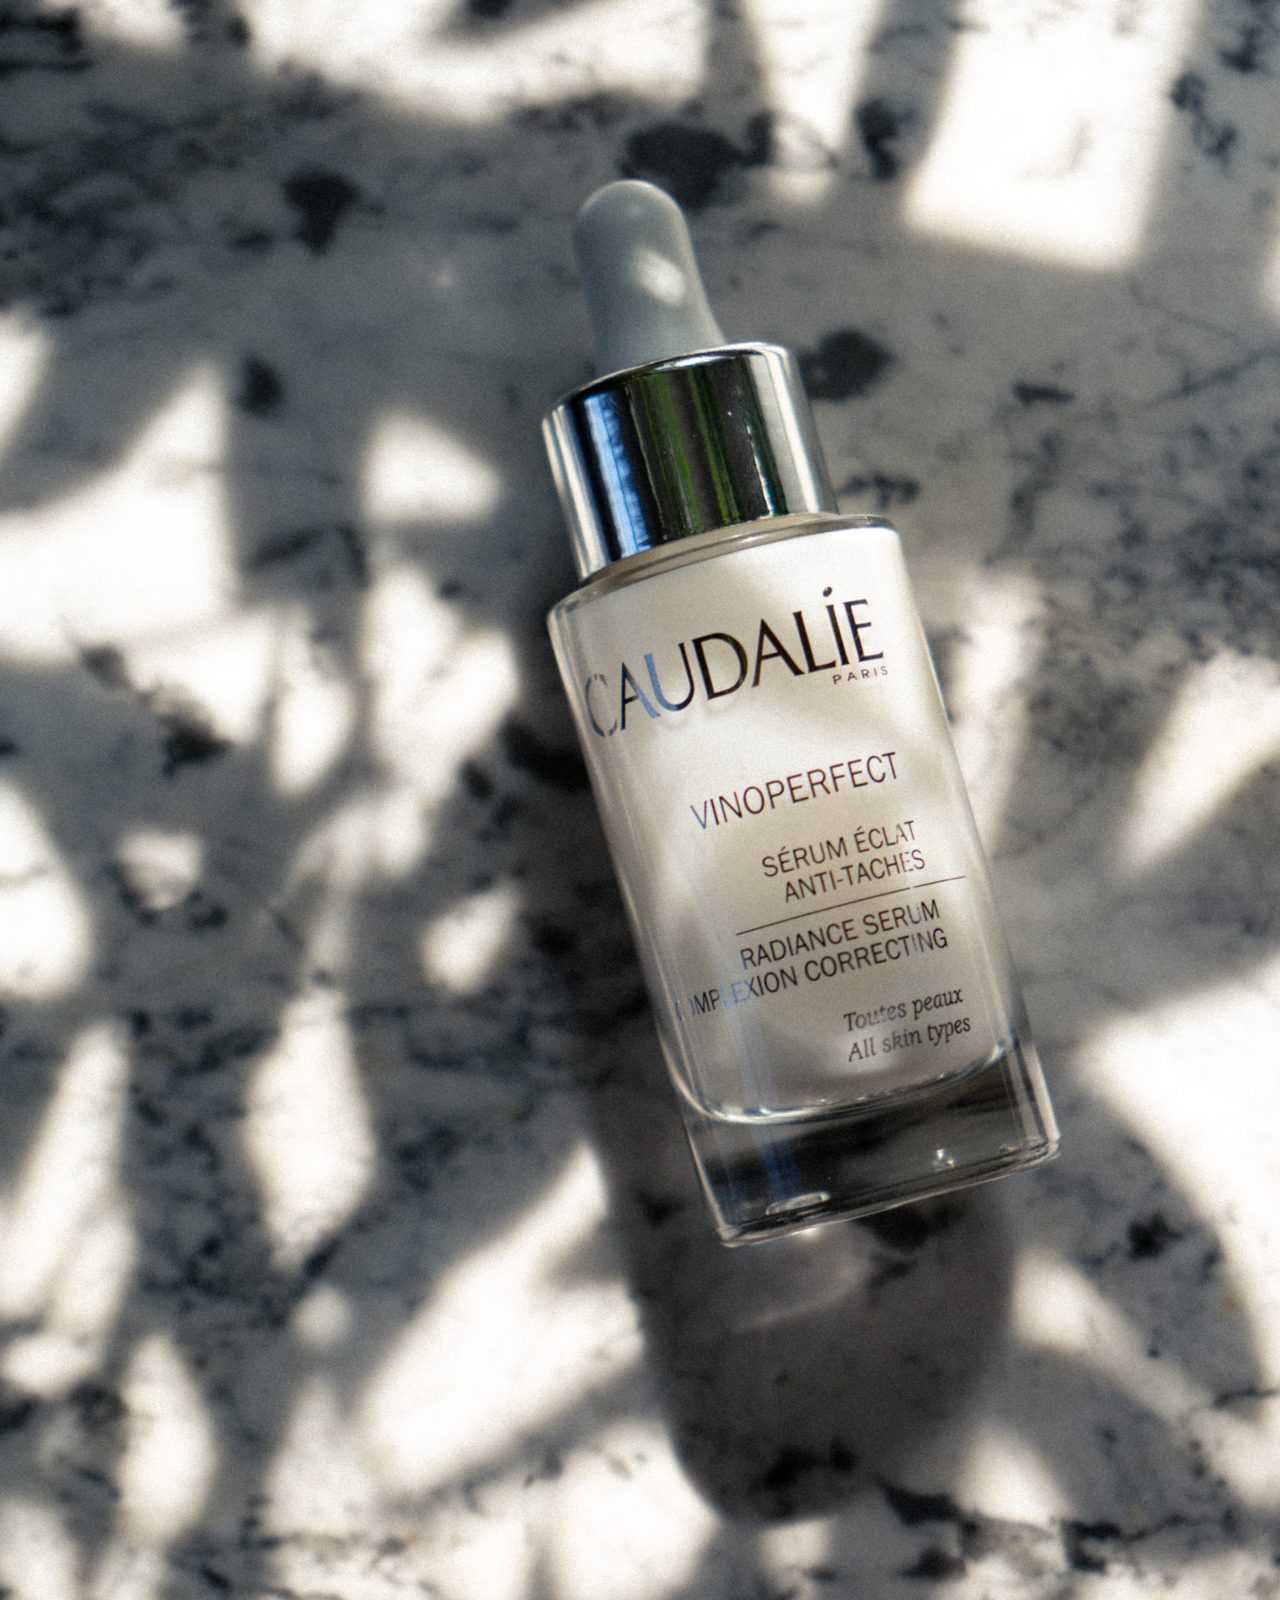 caudalie-vinoperfect-radiance-serum.JPG